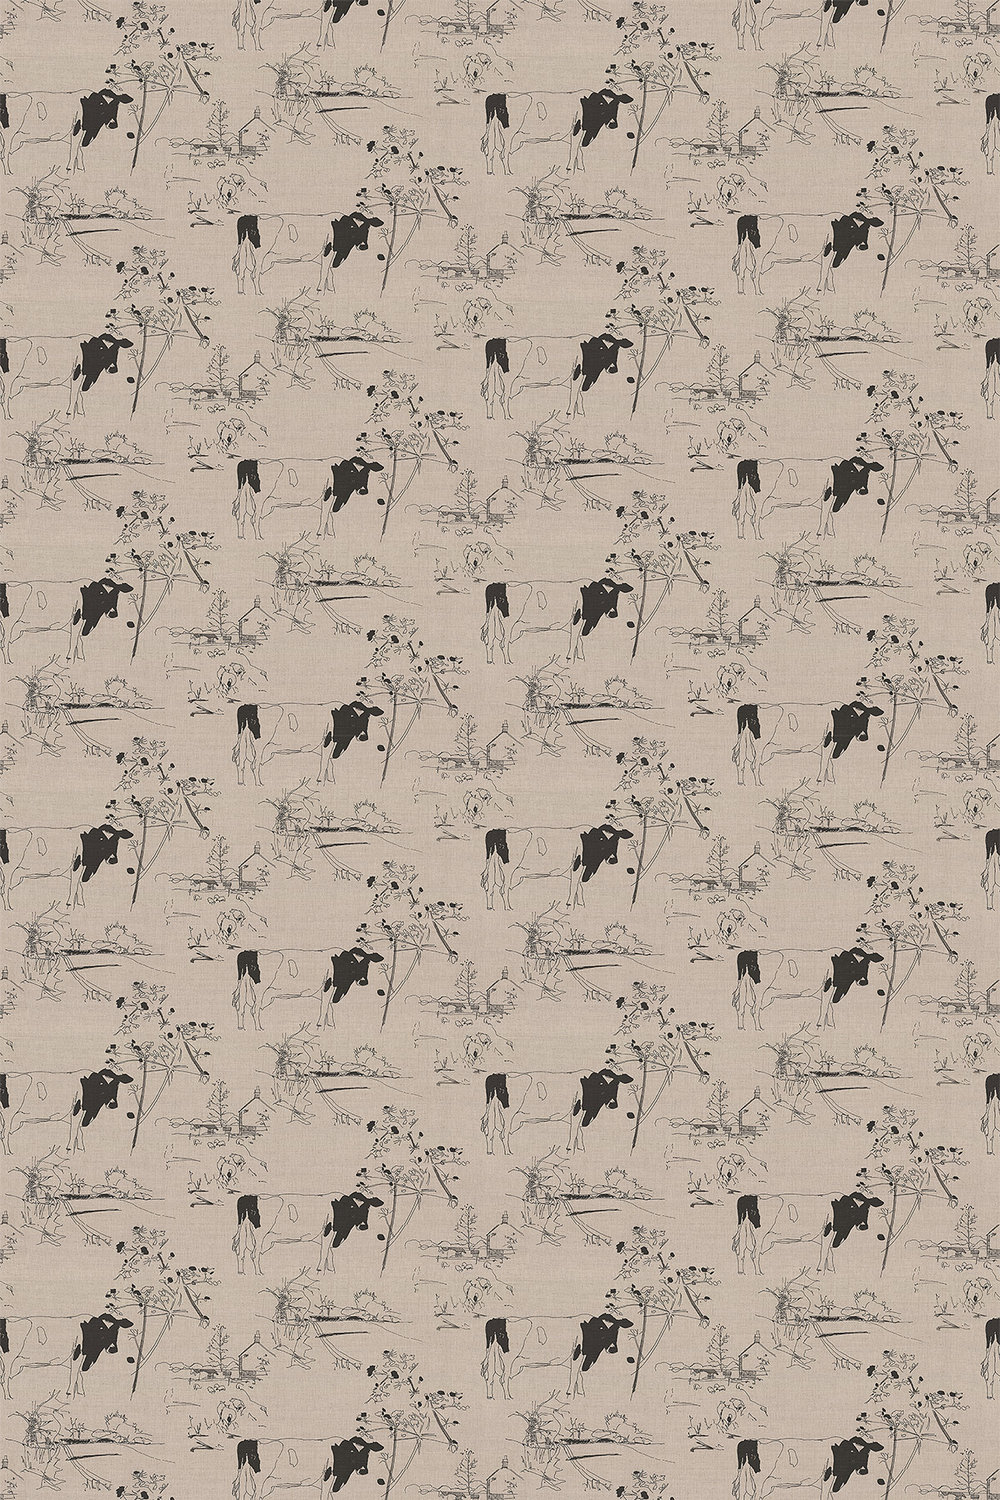 Countryside Toile 02 Fabric - Black / Linen - by Belynda Sharples